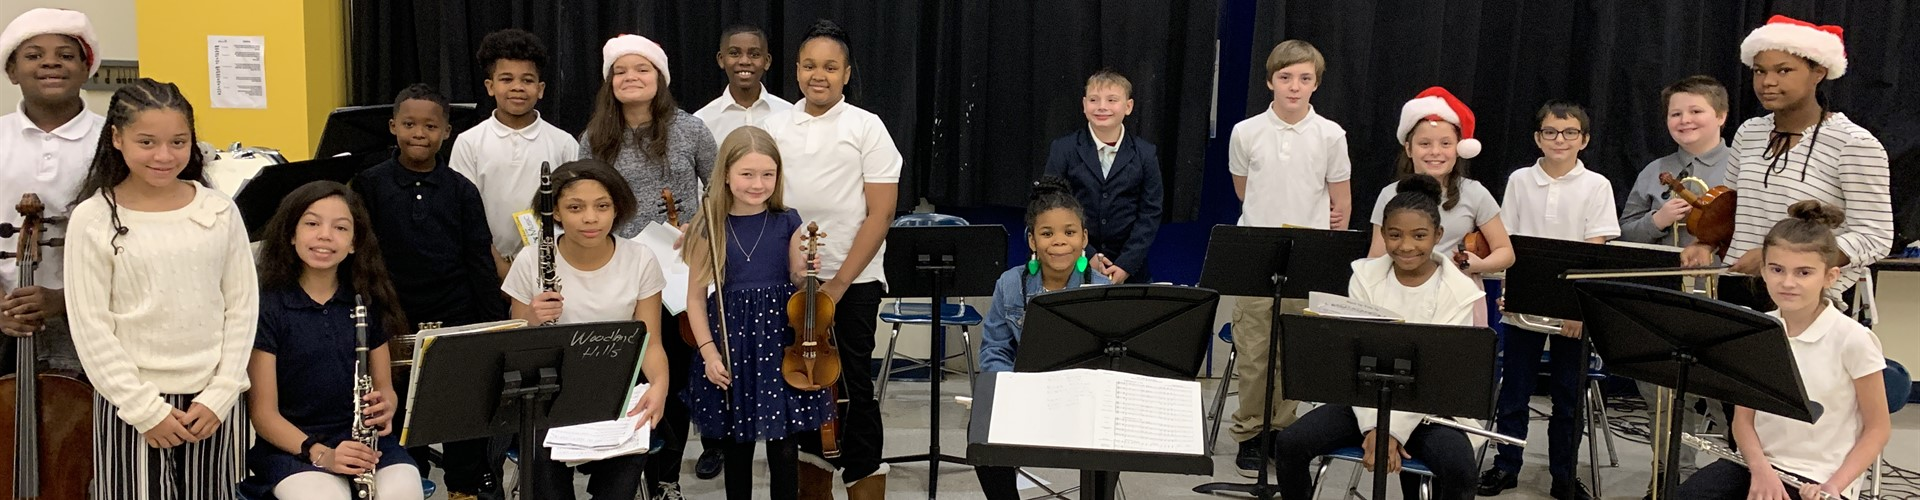 Wilkins STEAM Academy 2019 Winter Band/Orchestra/Chorus Concert